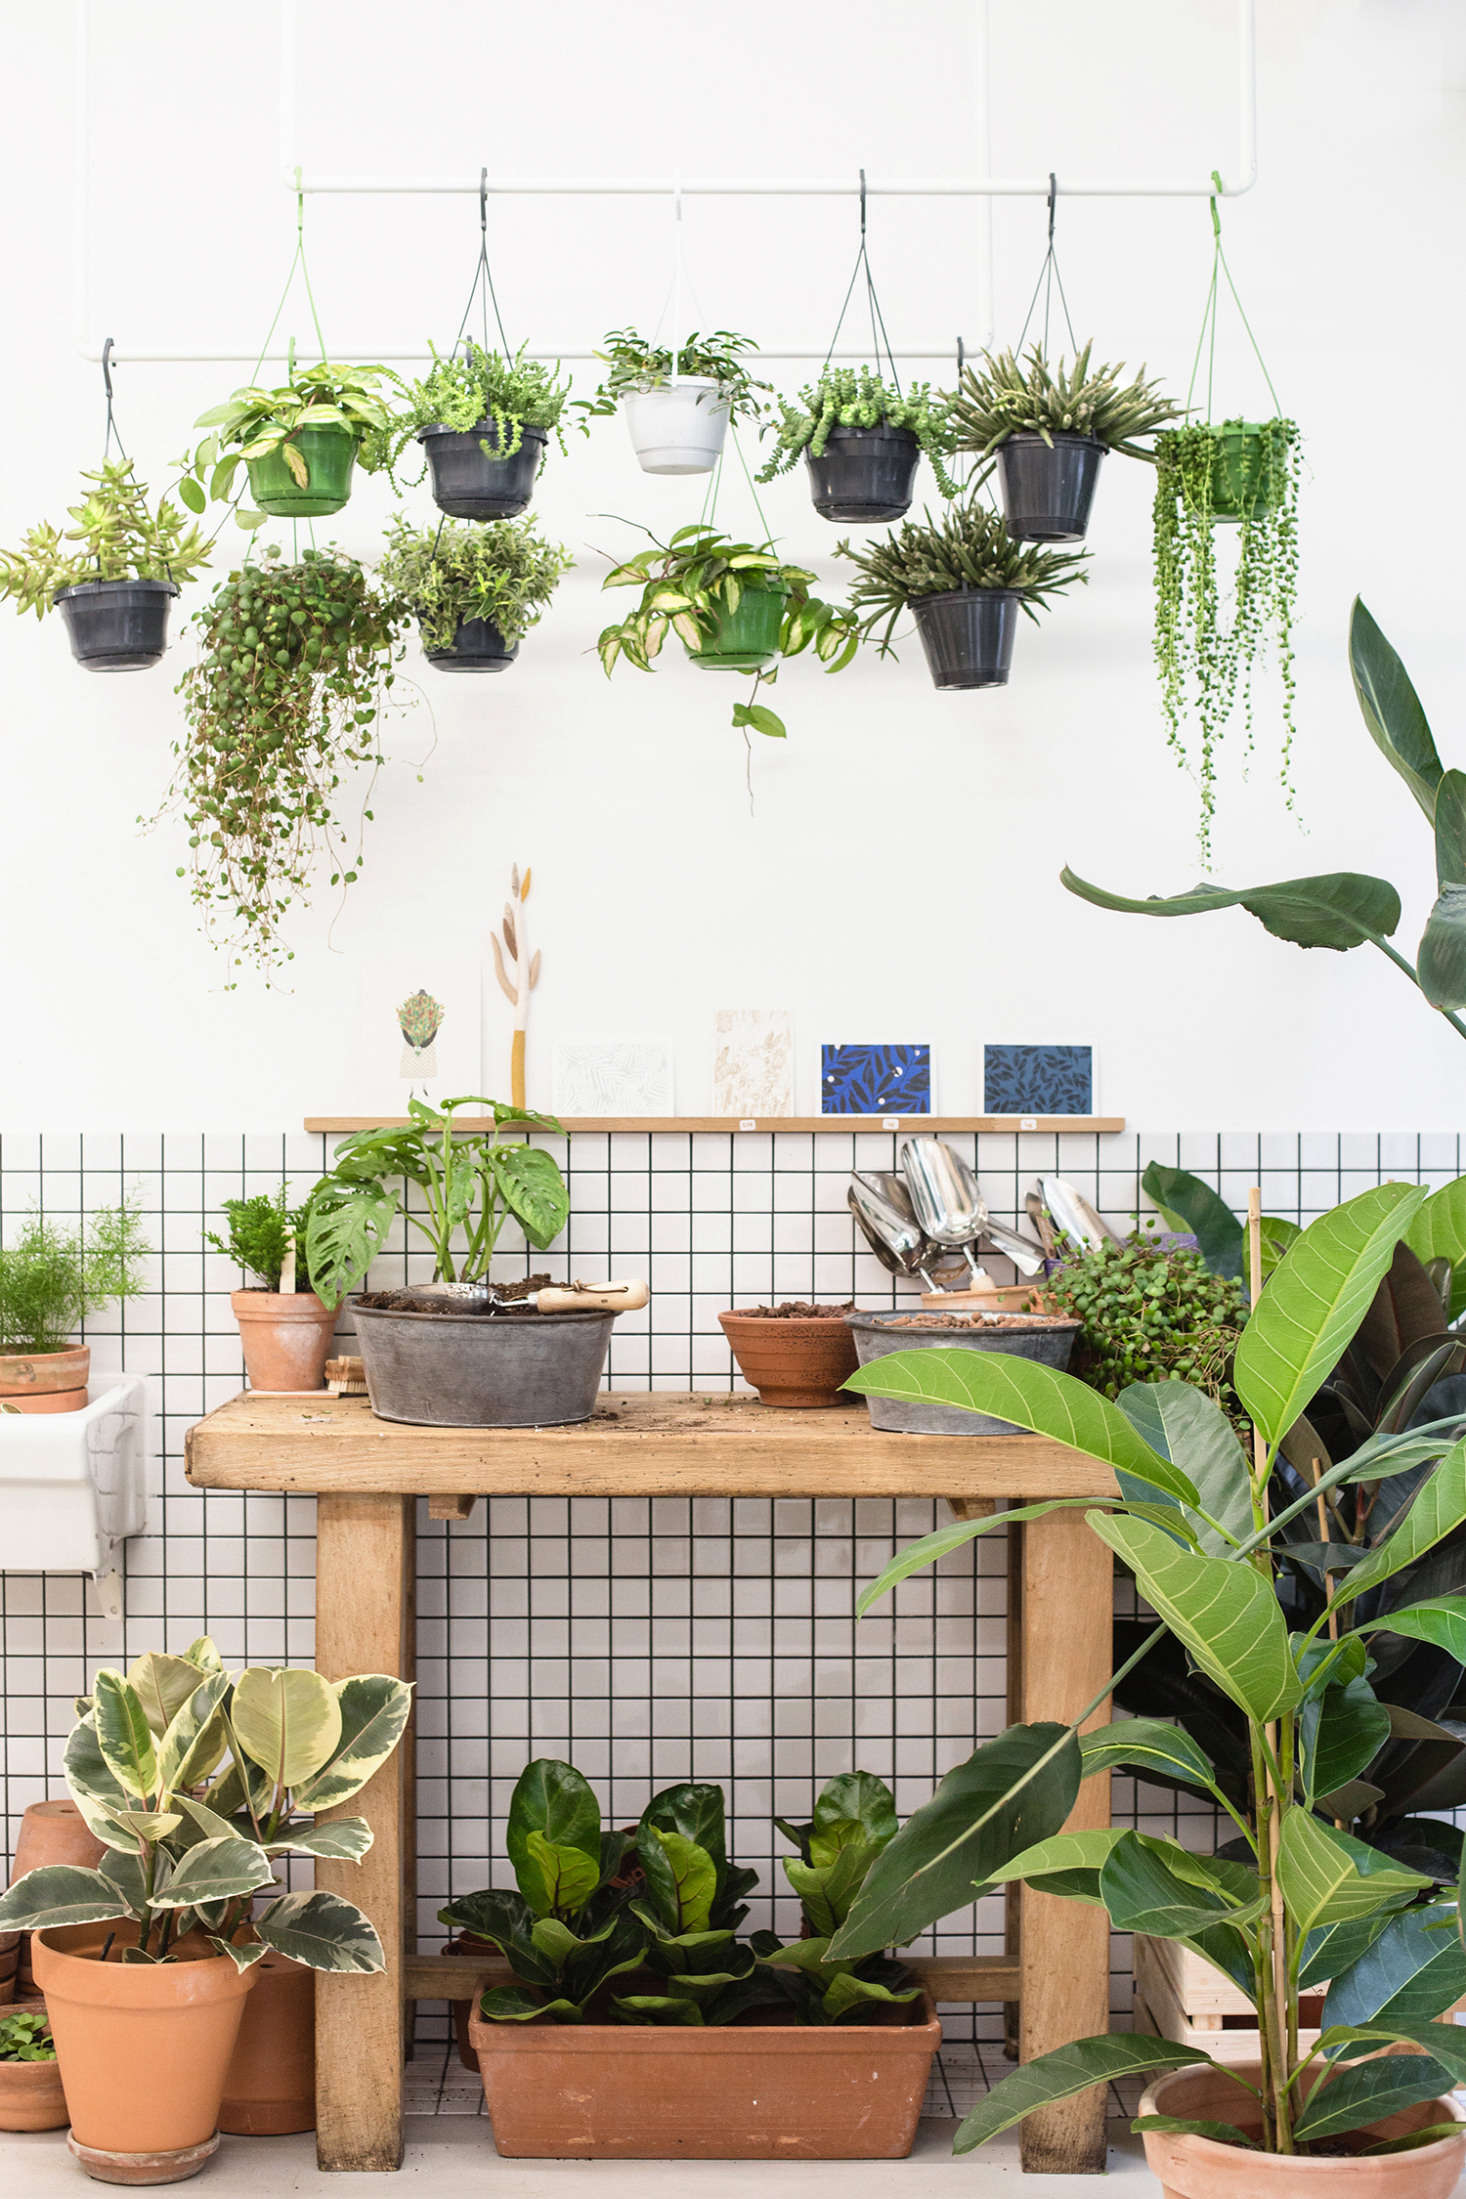 On offer are vigorous specimens of succulents including a handsome, trailing string of pearls (Senecio rowleyanus) at right; variegated pothos vines (at center), and baby fiddle-leaf-fig trees (in a terracotta planter beneath the potting bench).